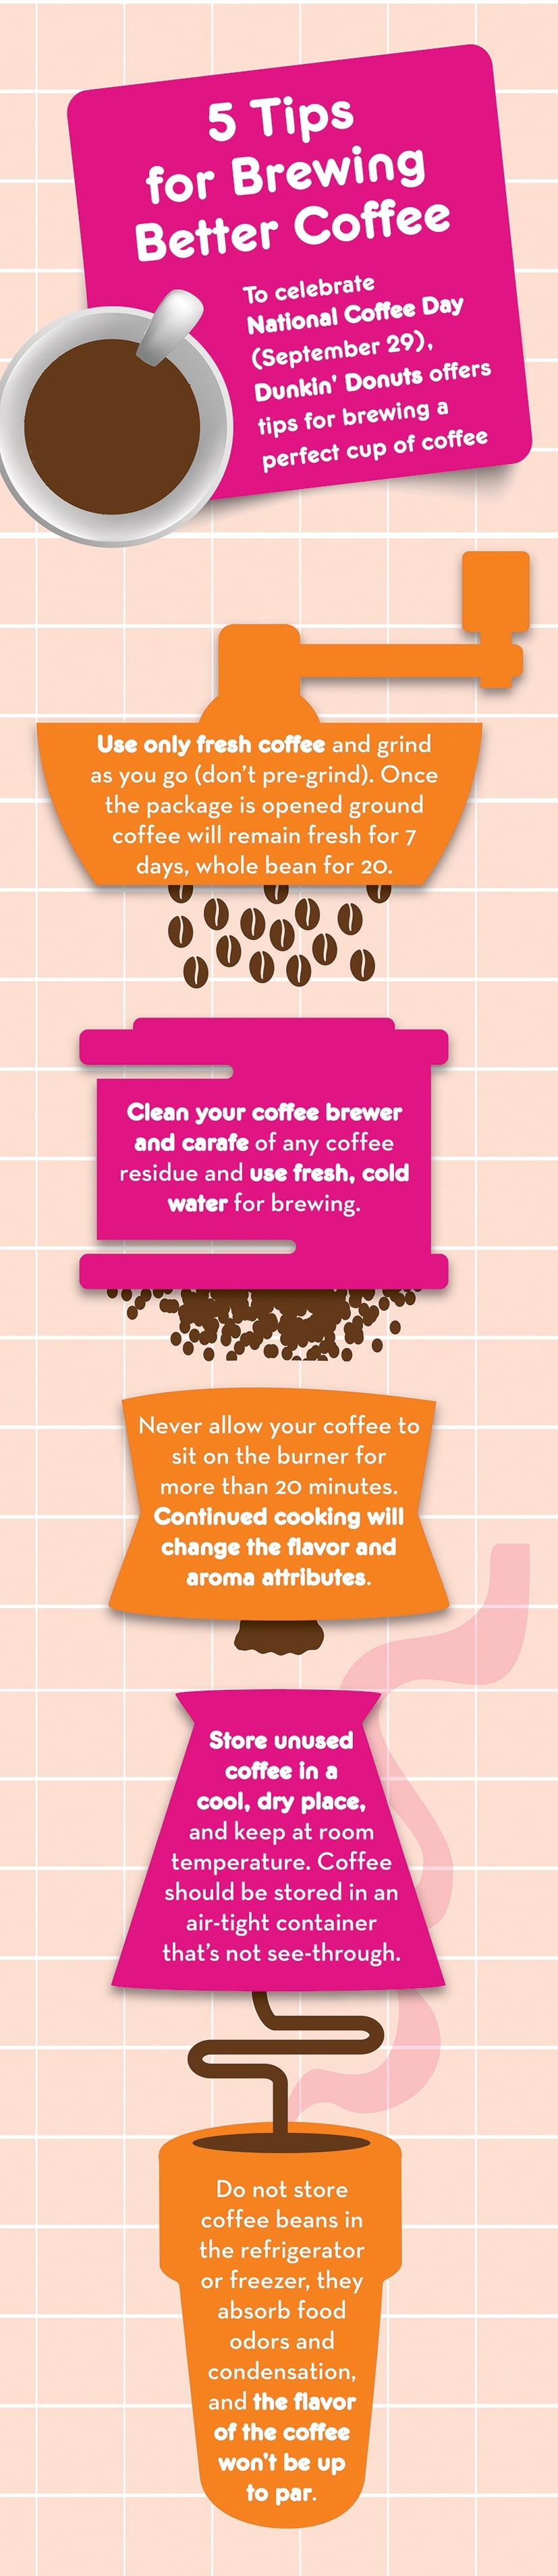 Coffee Brewing Tips For Ultimately Better Tasting Coffee [Infographic]